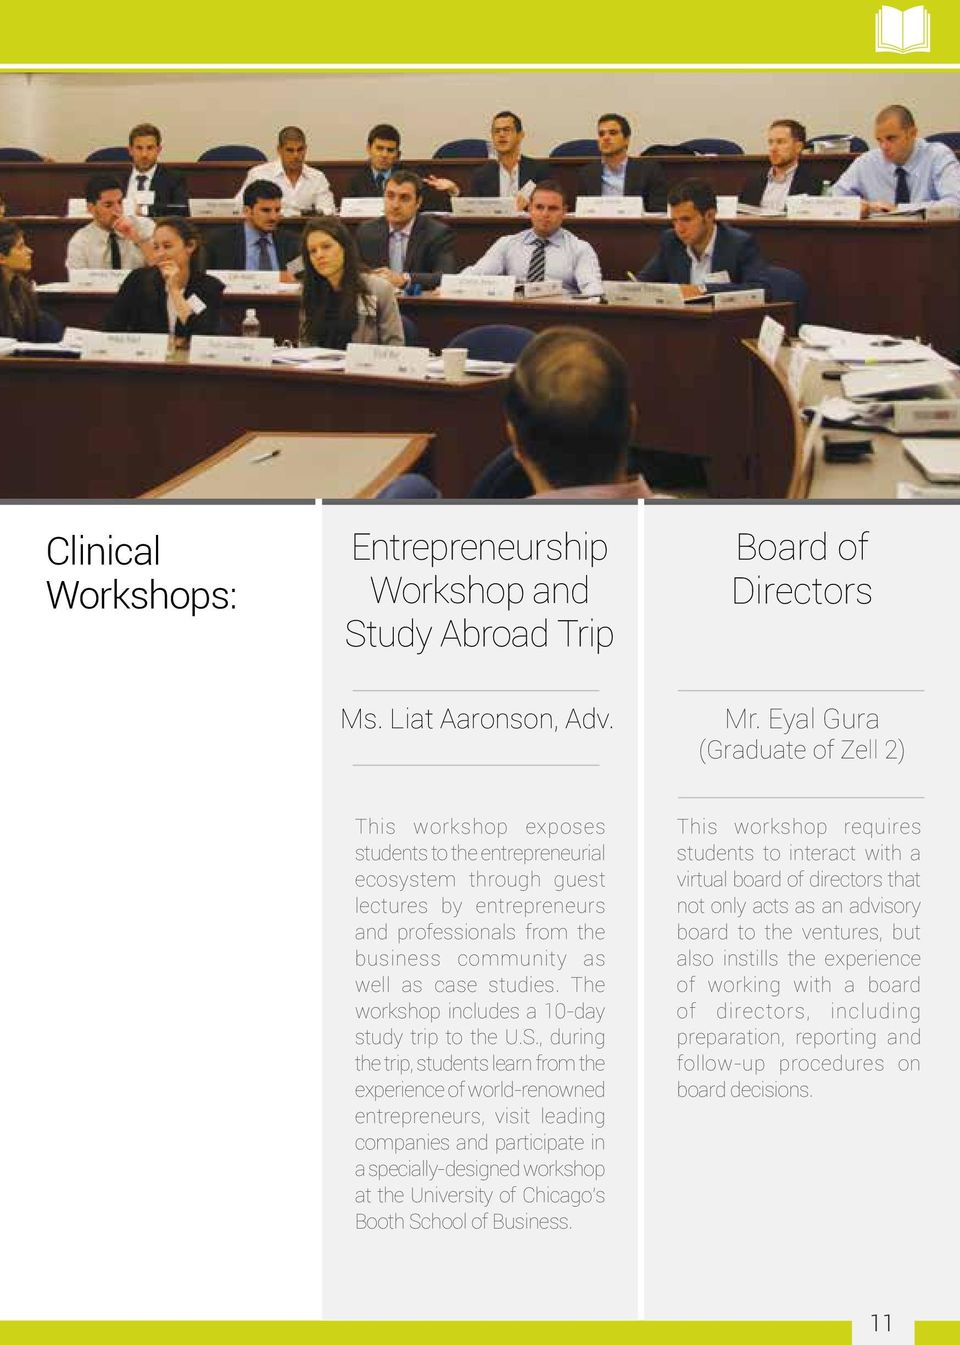 studies. The workshop includes a 10-day study trip to the U.S.